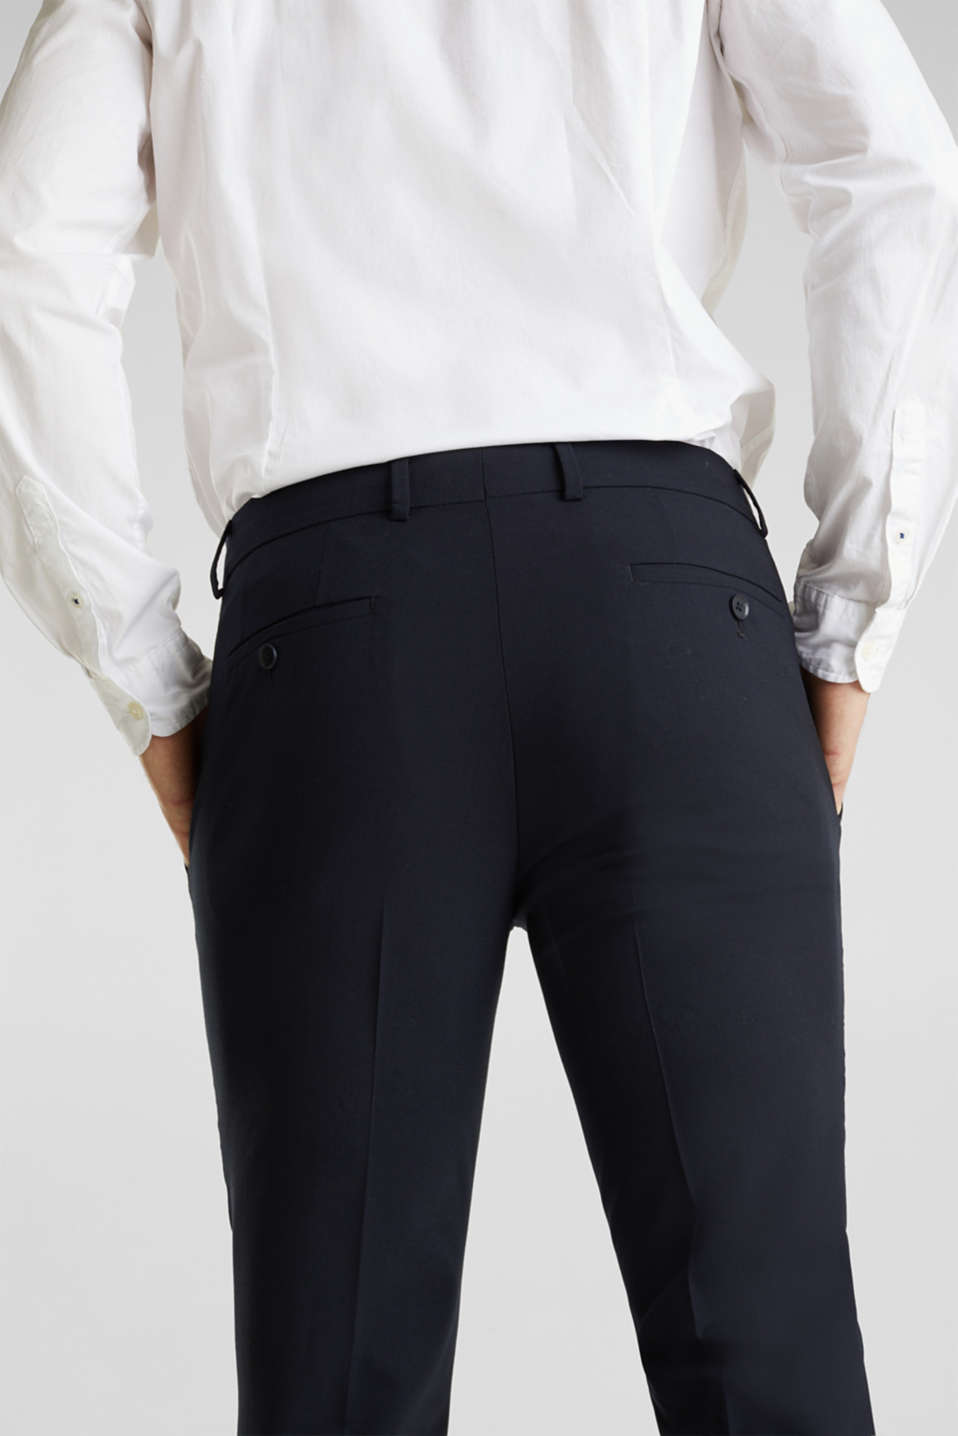 ACTIVE SUIT BLACK trousers made of blended wool, DARK BLUE, detail image number 4